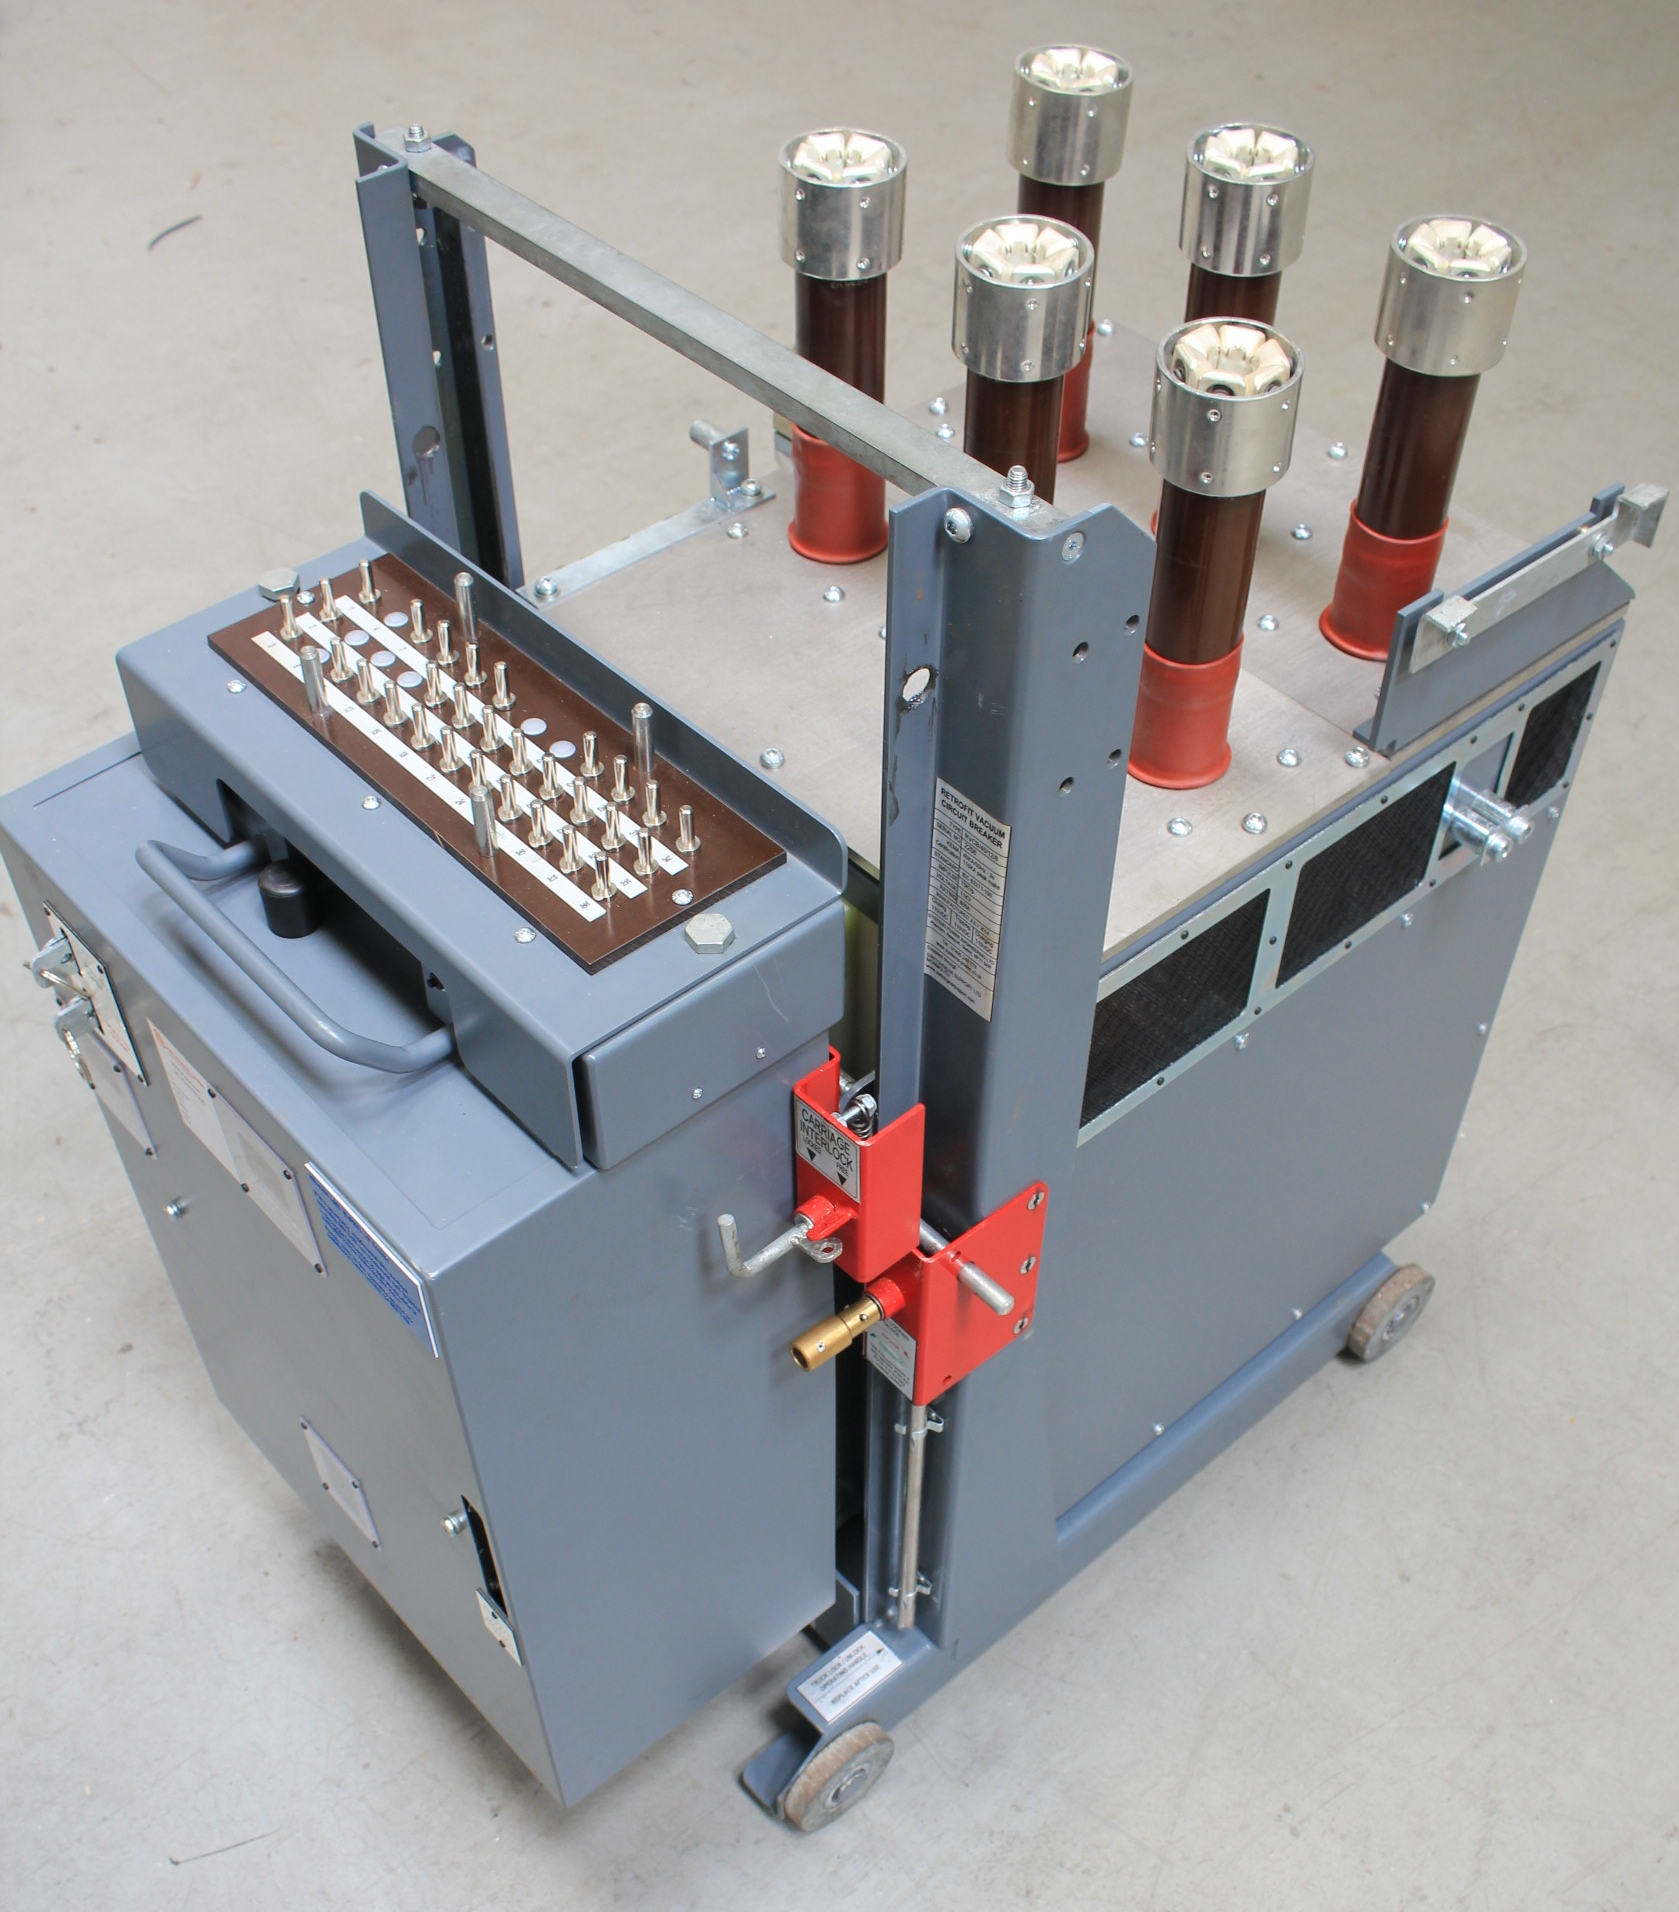 40kA Retrofit Breaker Solutions